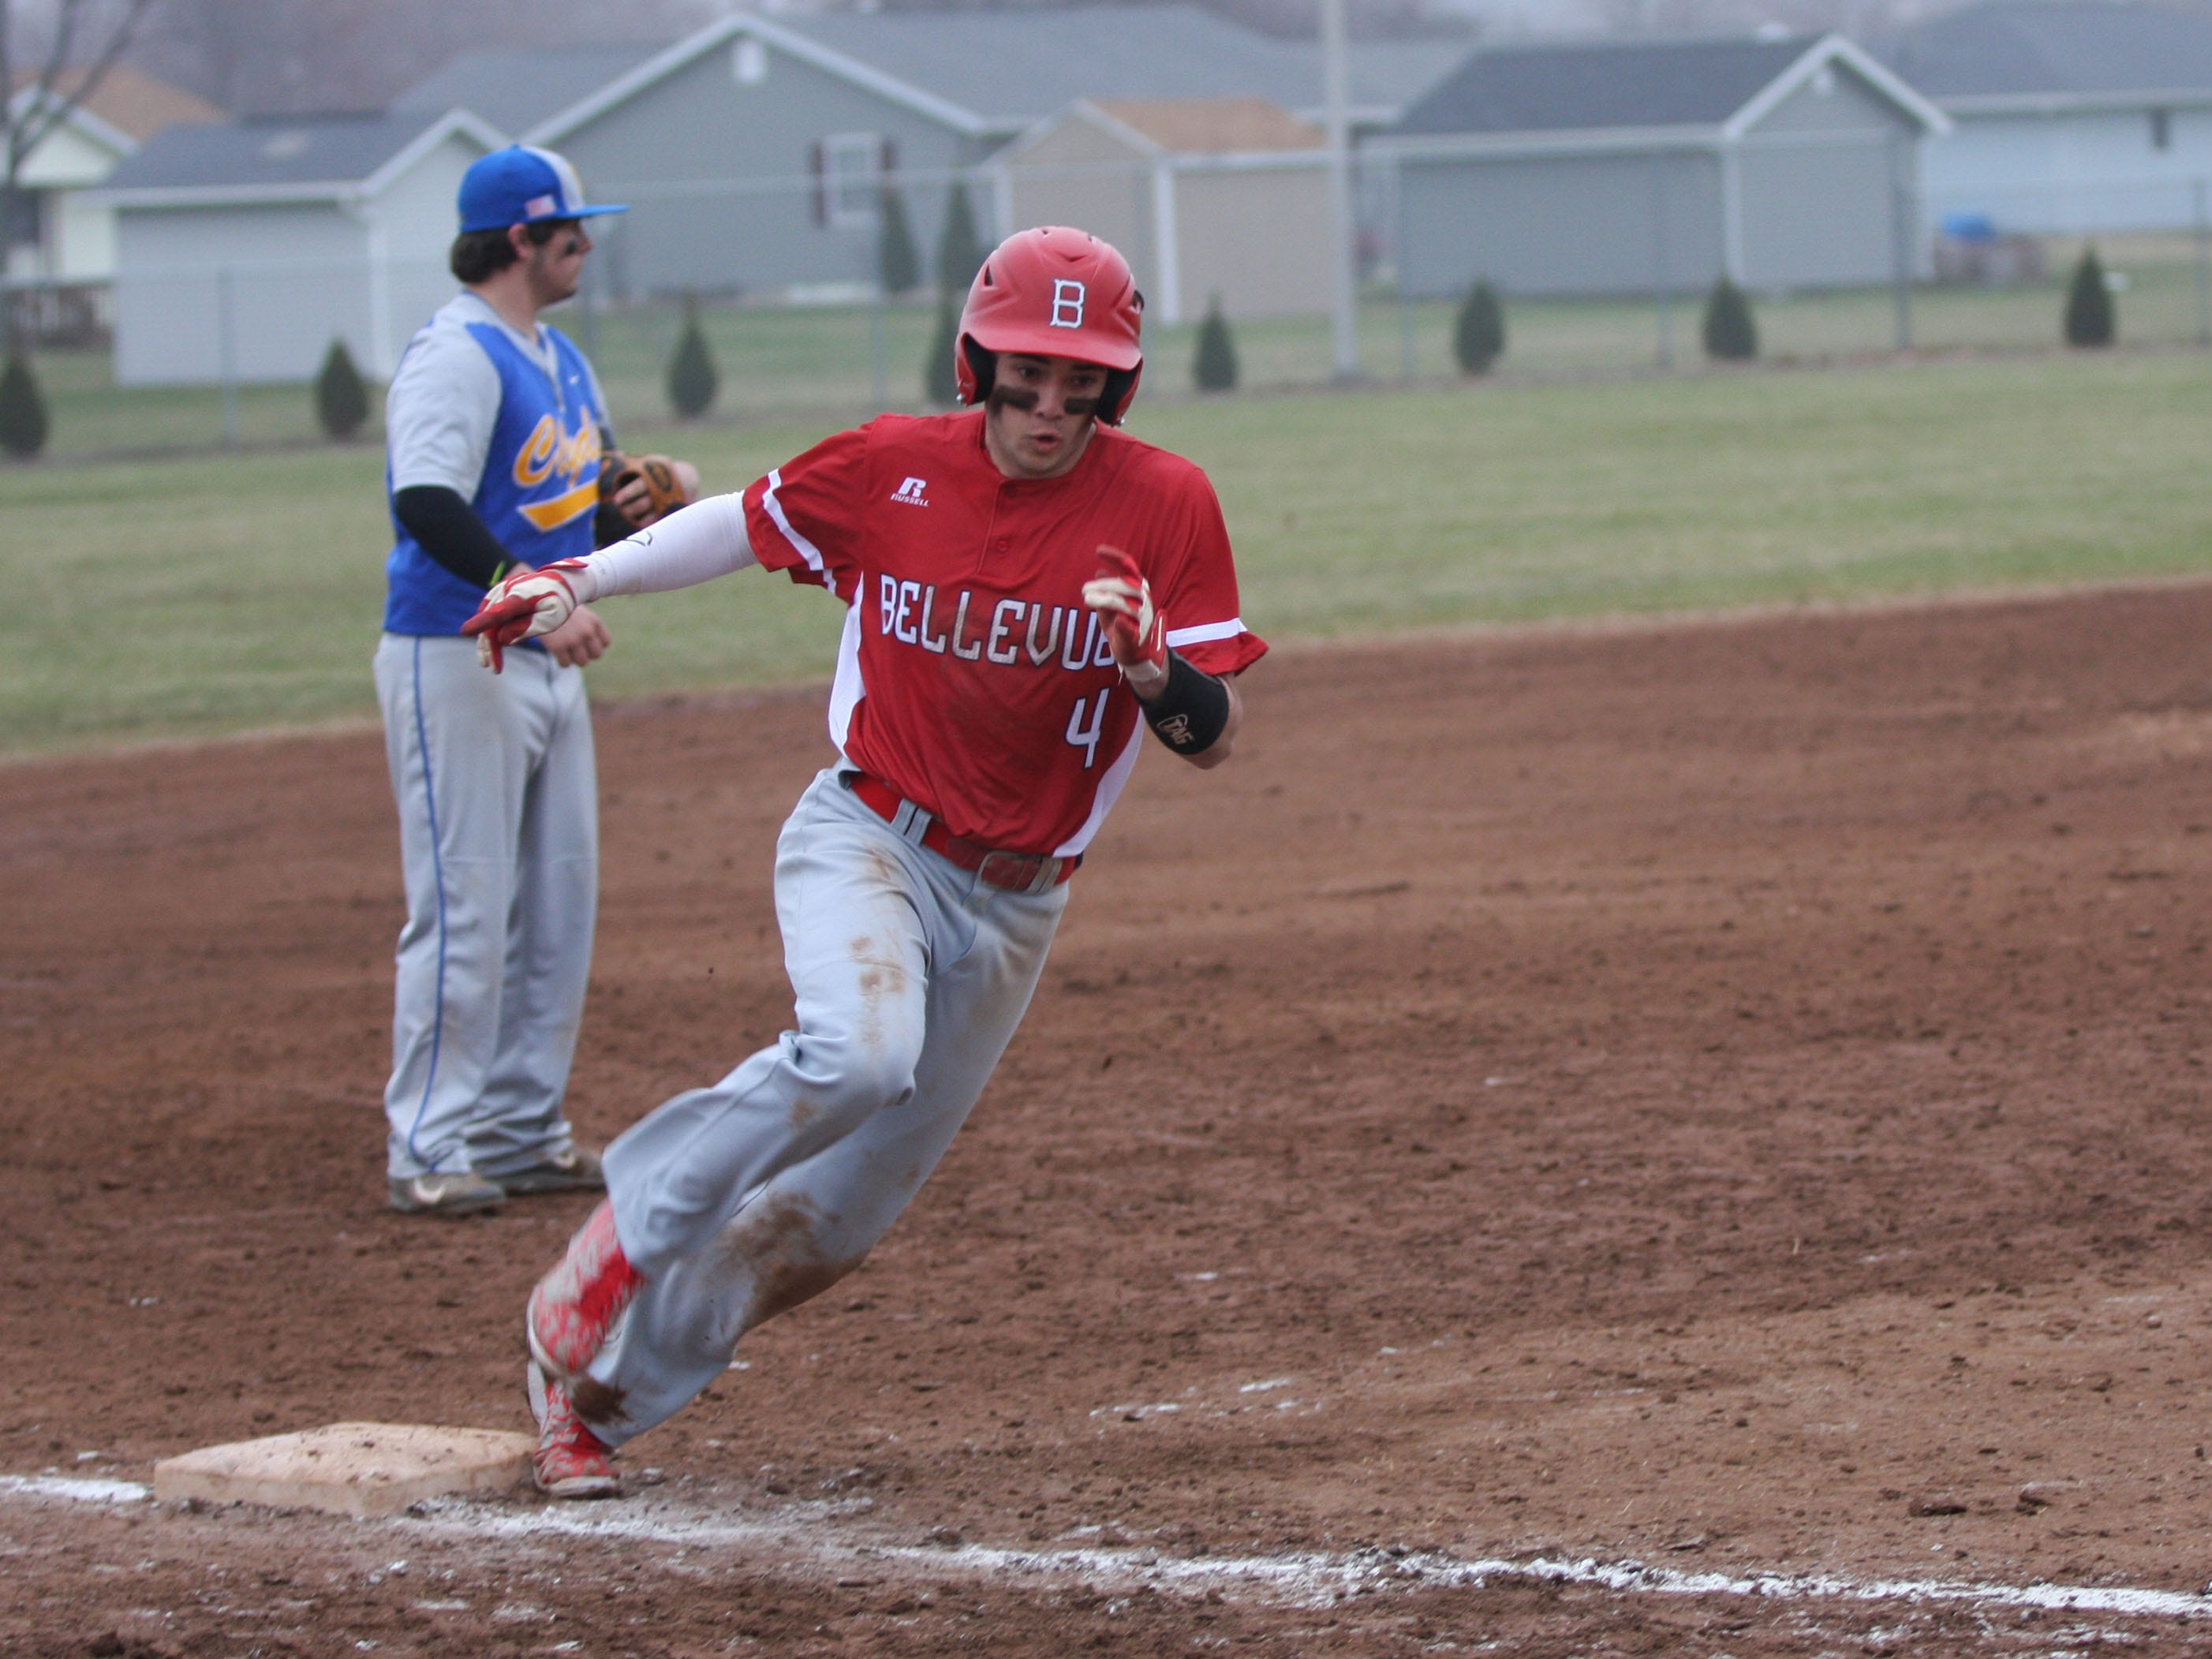 Bellevue's Grant Vickery rounds third to score the go-ahead run in the top of the seventh inning Wednesday against Clyde.